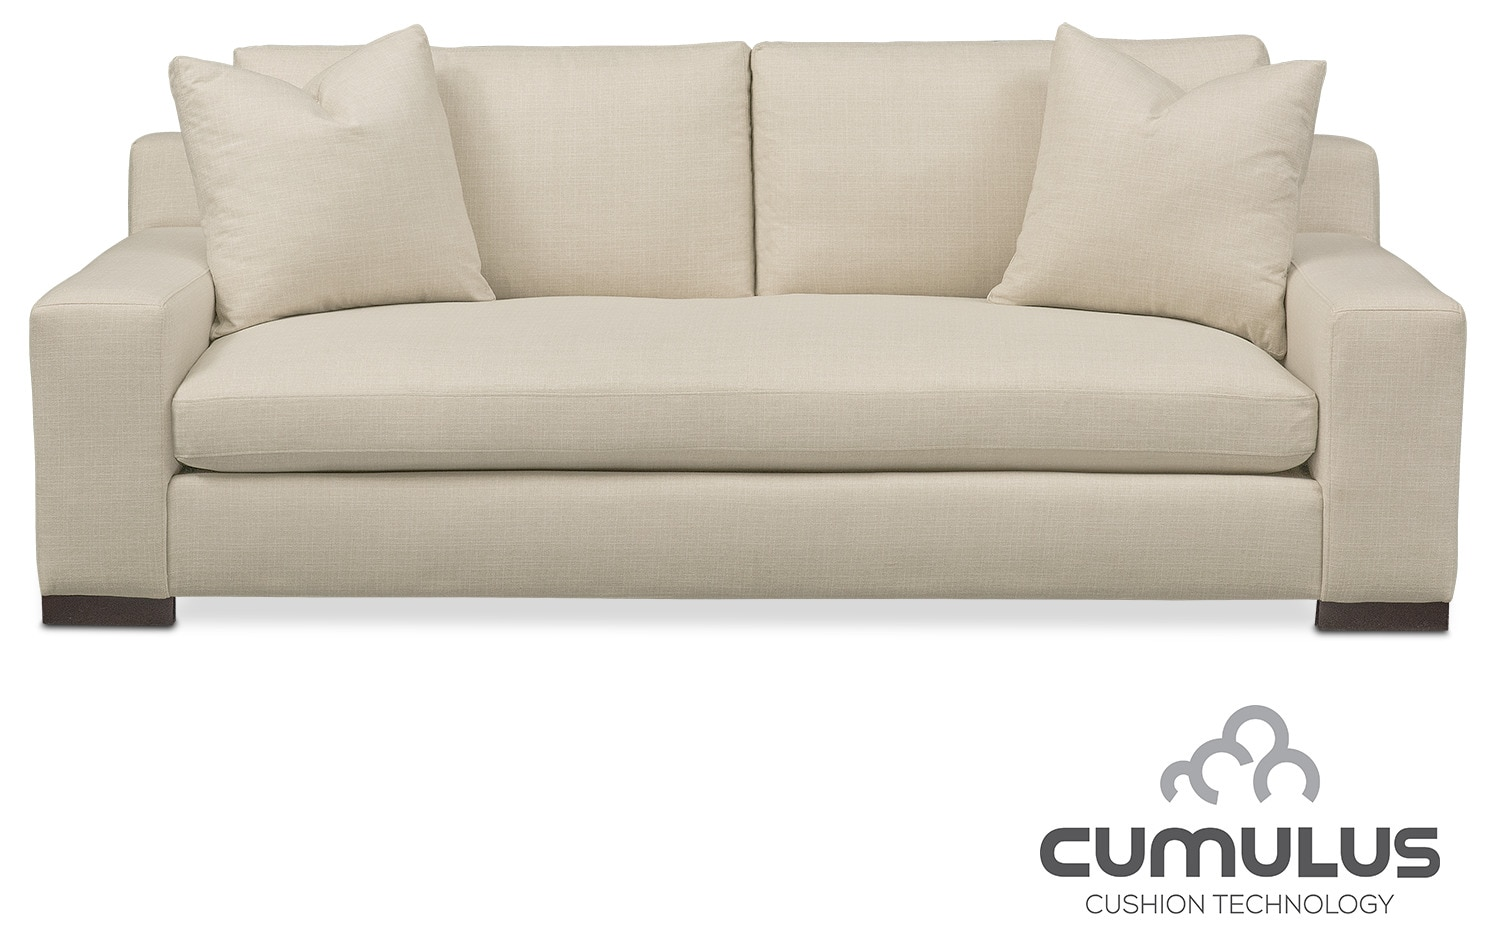 Sofas Couches Living Room Seating American Signature Furniture - American signature sofas